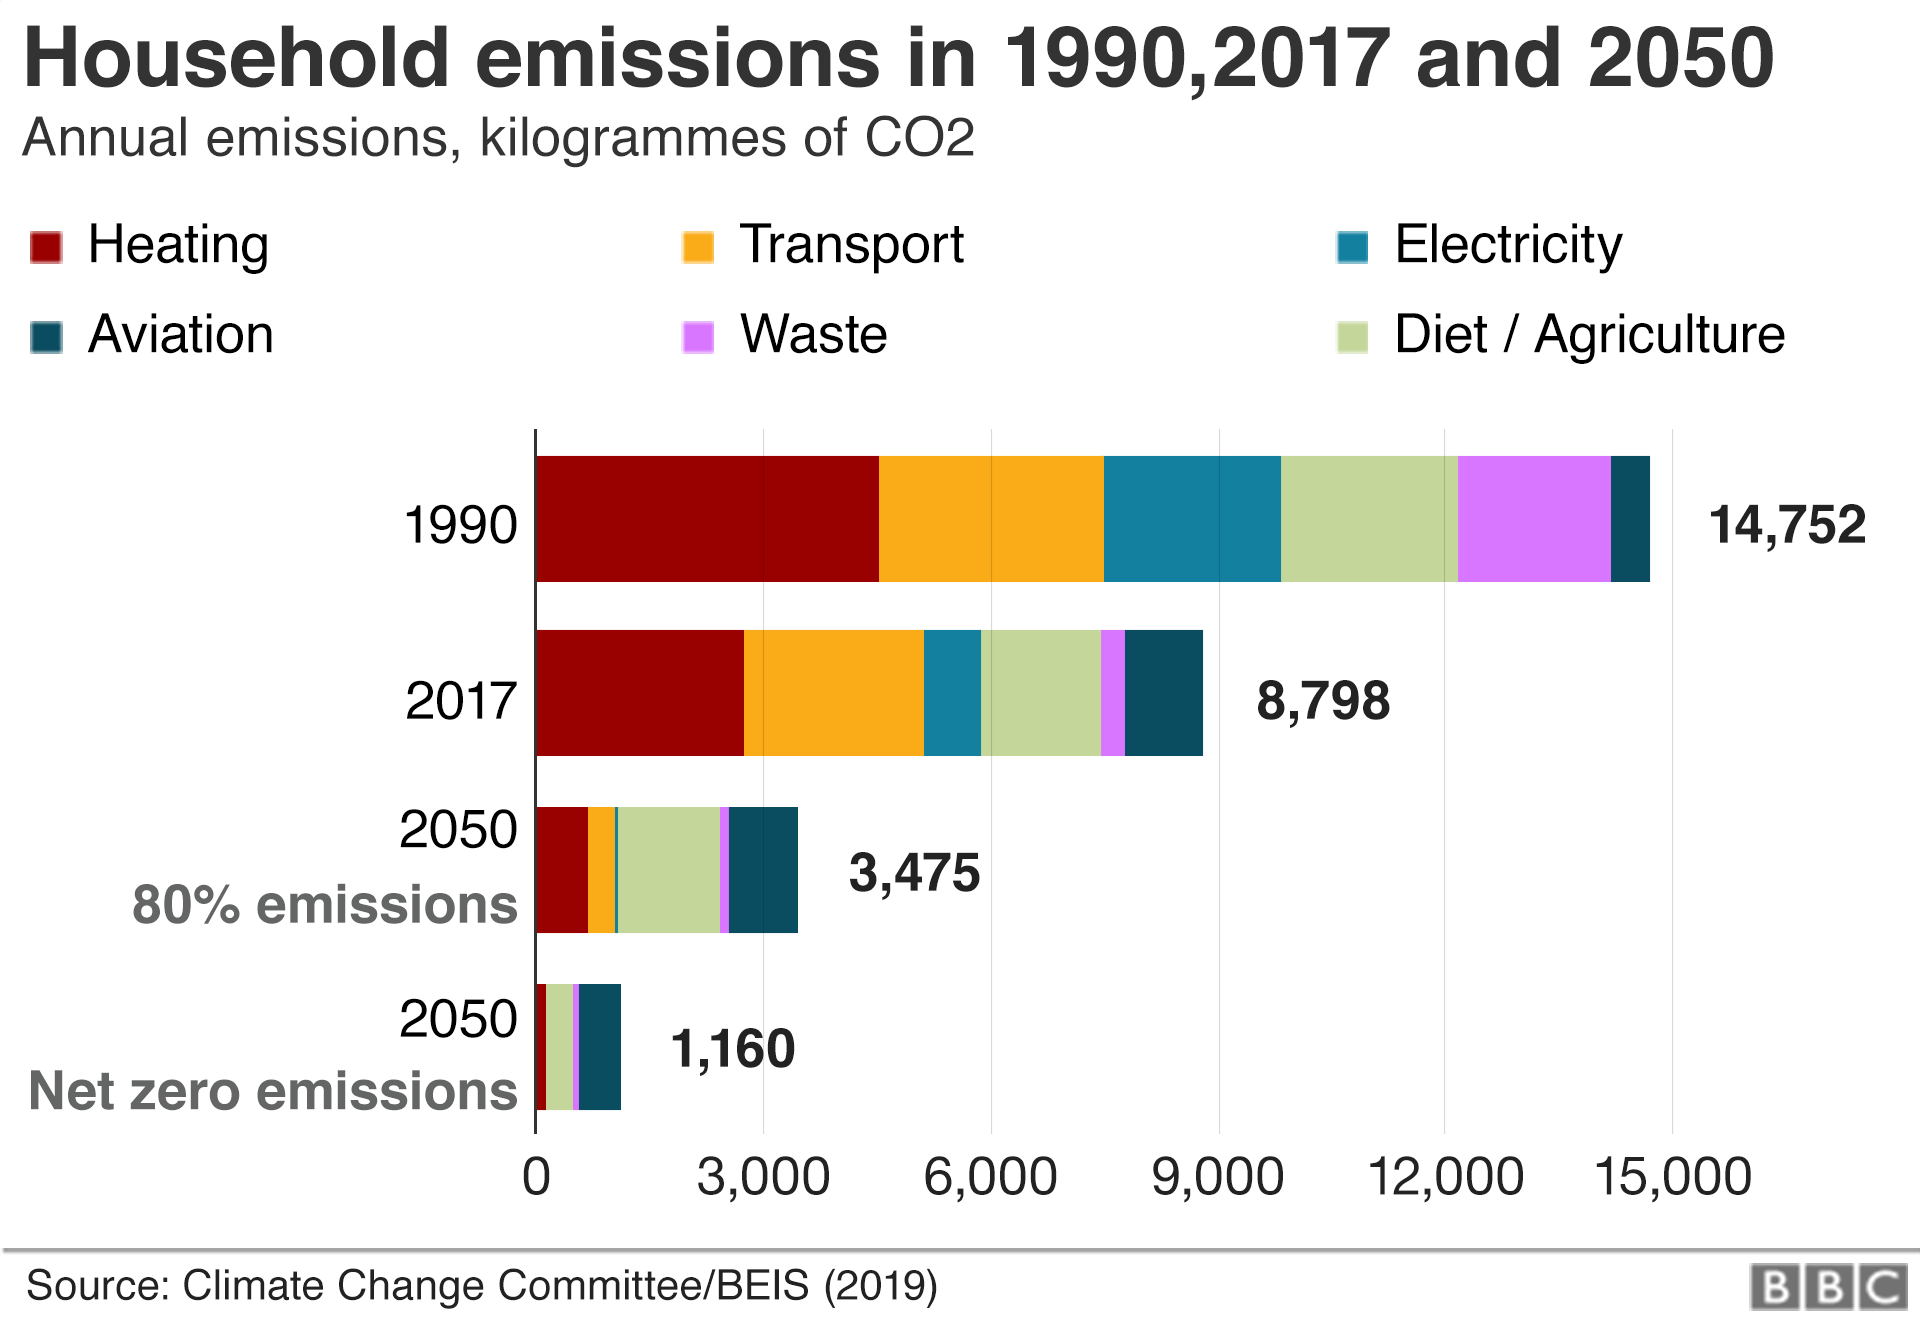 Chart showing the breakdown of household emissions in 1990, 2017 and 2050.